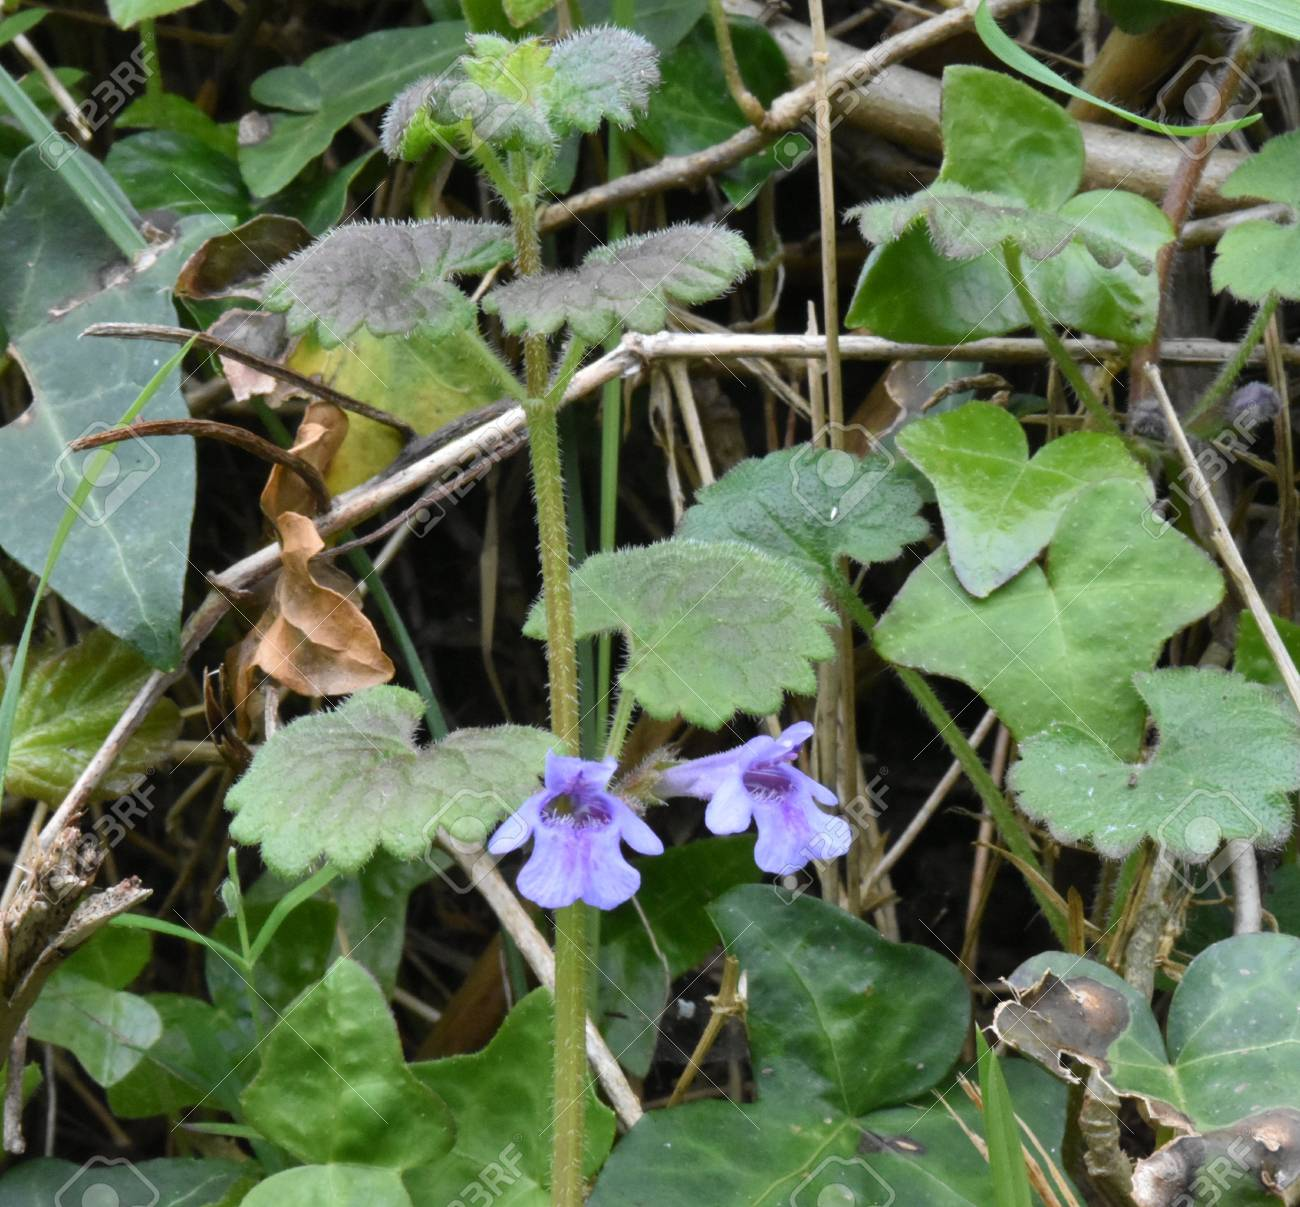 Close up of flowers, leaves and stem of Ground ivy (Glechoma hederacea) Stock Photo - 84908338